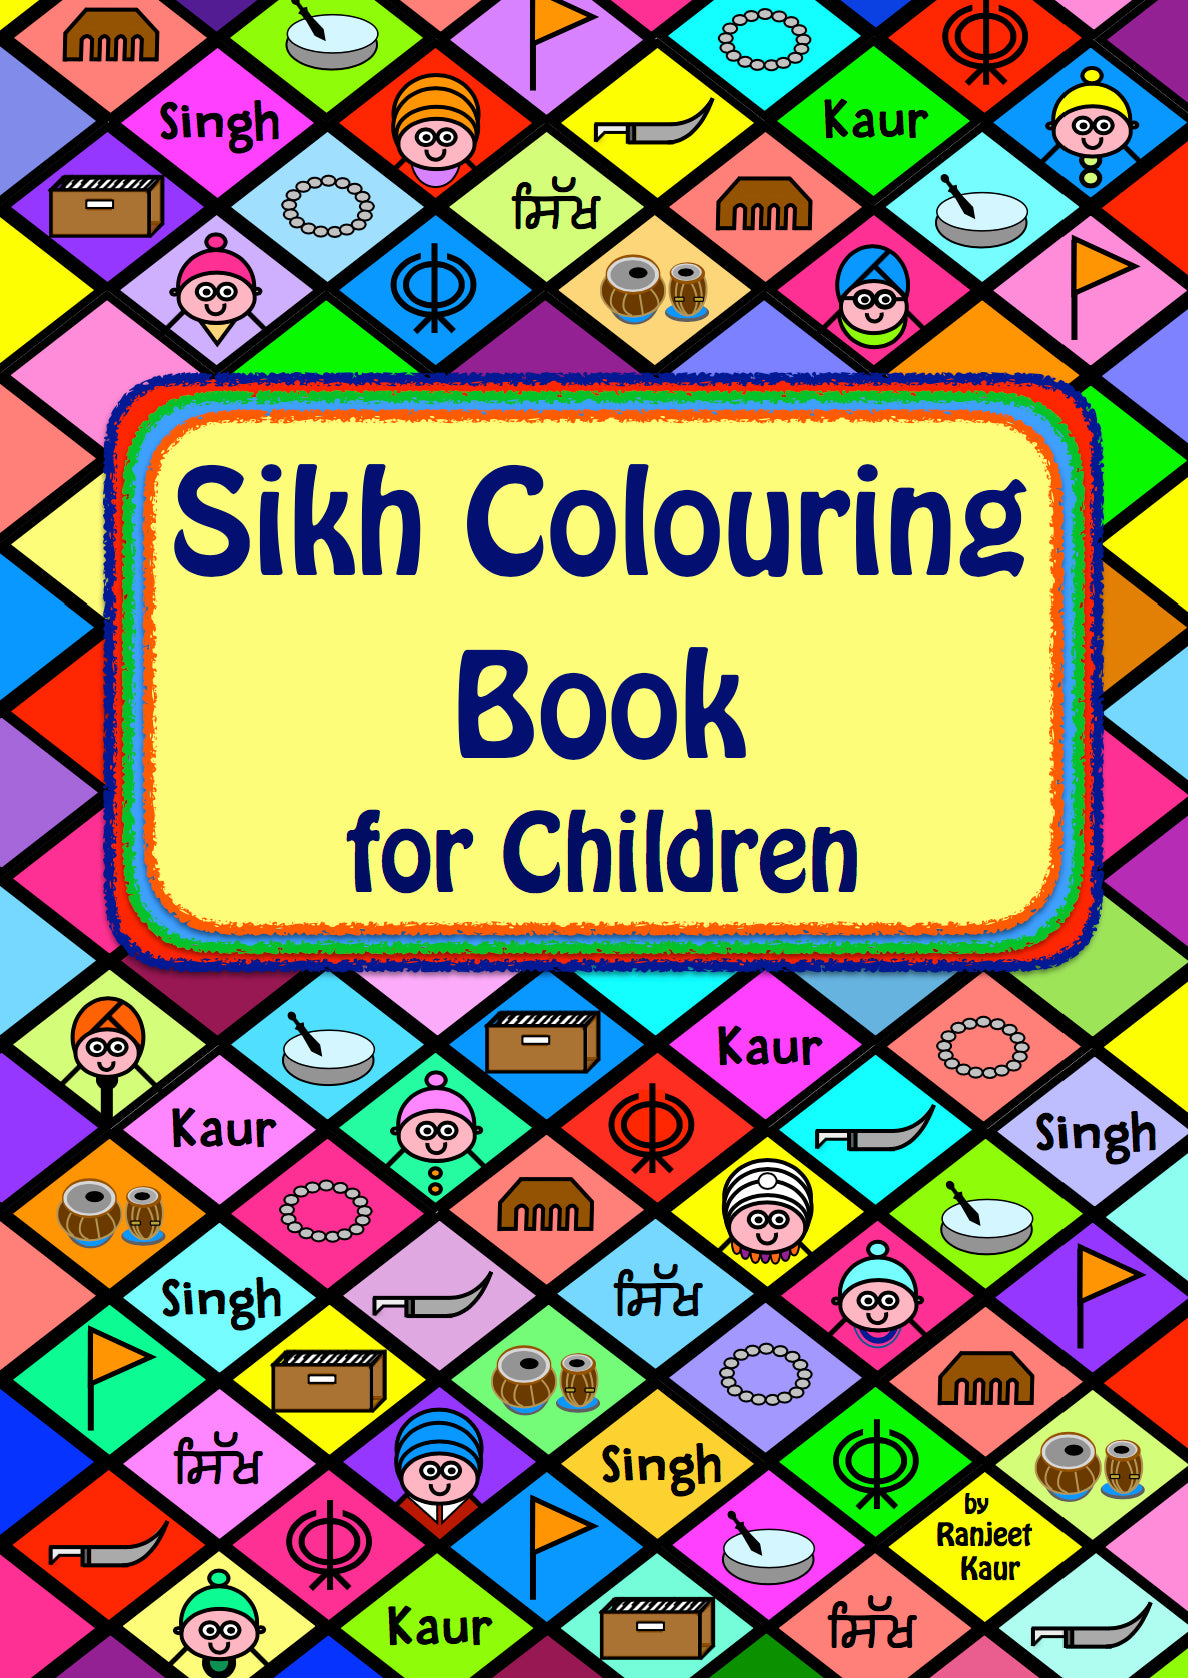 Sikh Kids Collection - Sikhexpo